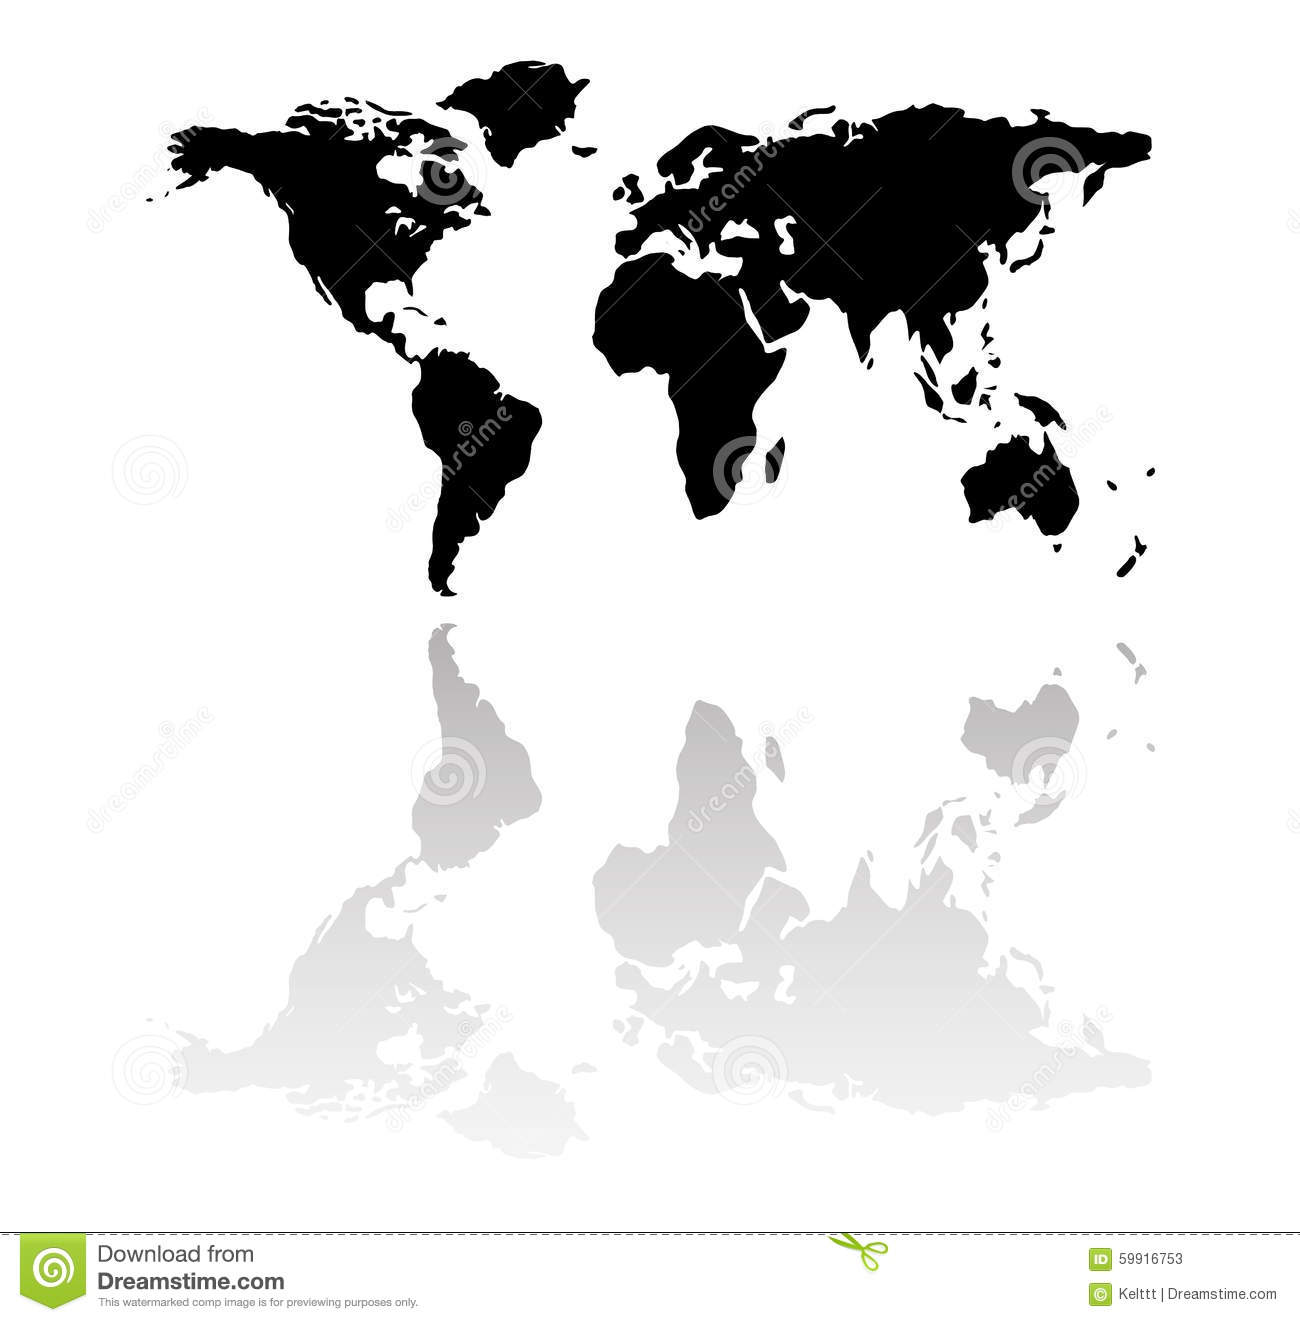 Black world map silhouette stock illustration illustration of info black world map silhouette royalty free illustration gumiabroncs